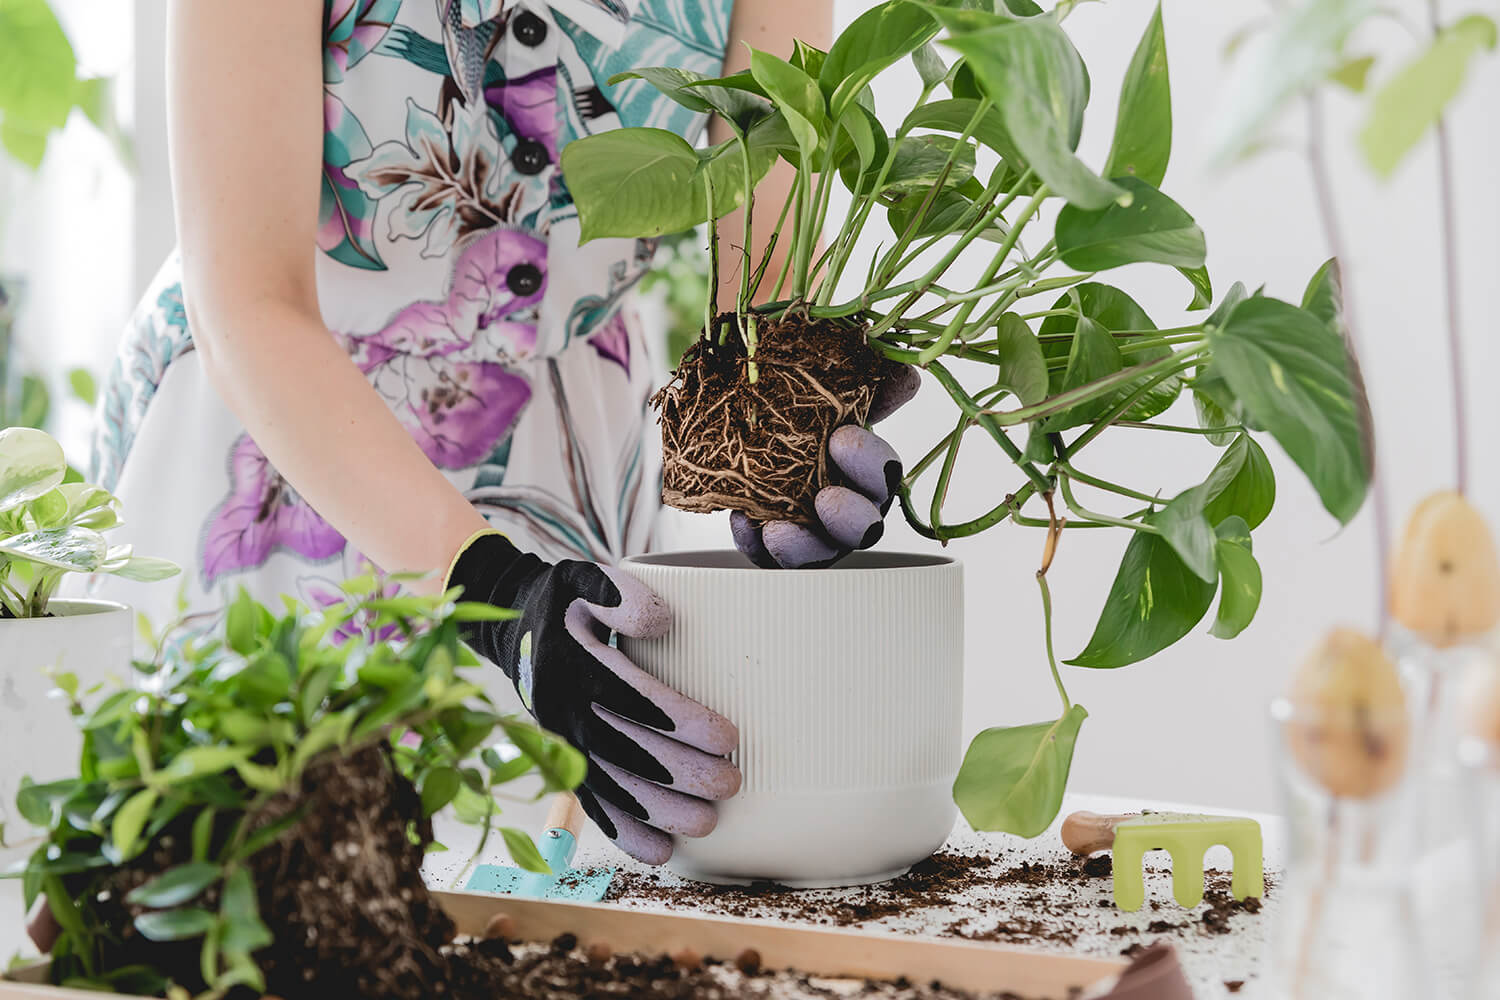 7 Effective Tips on How to Keep Your Plants Alive